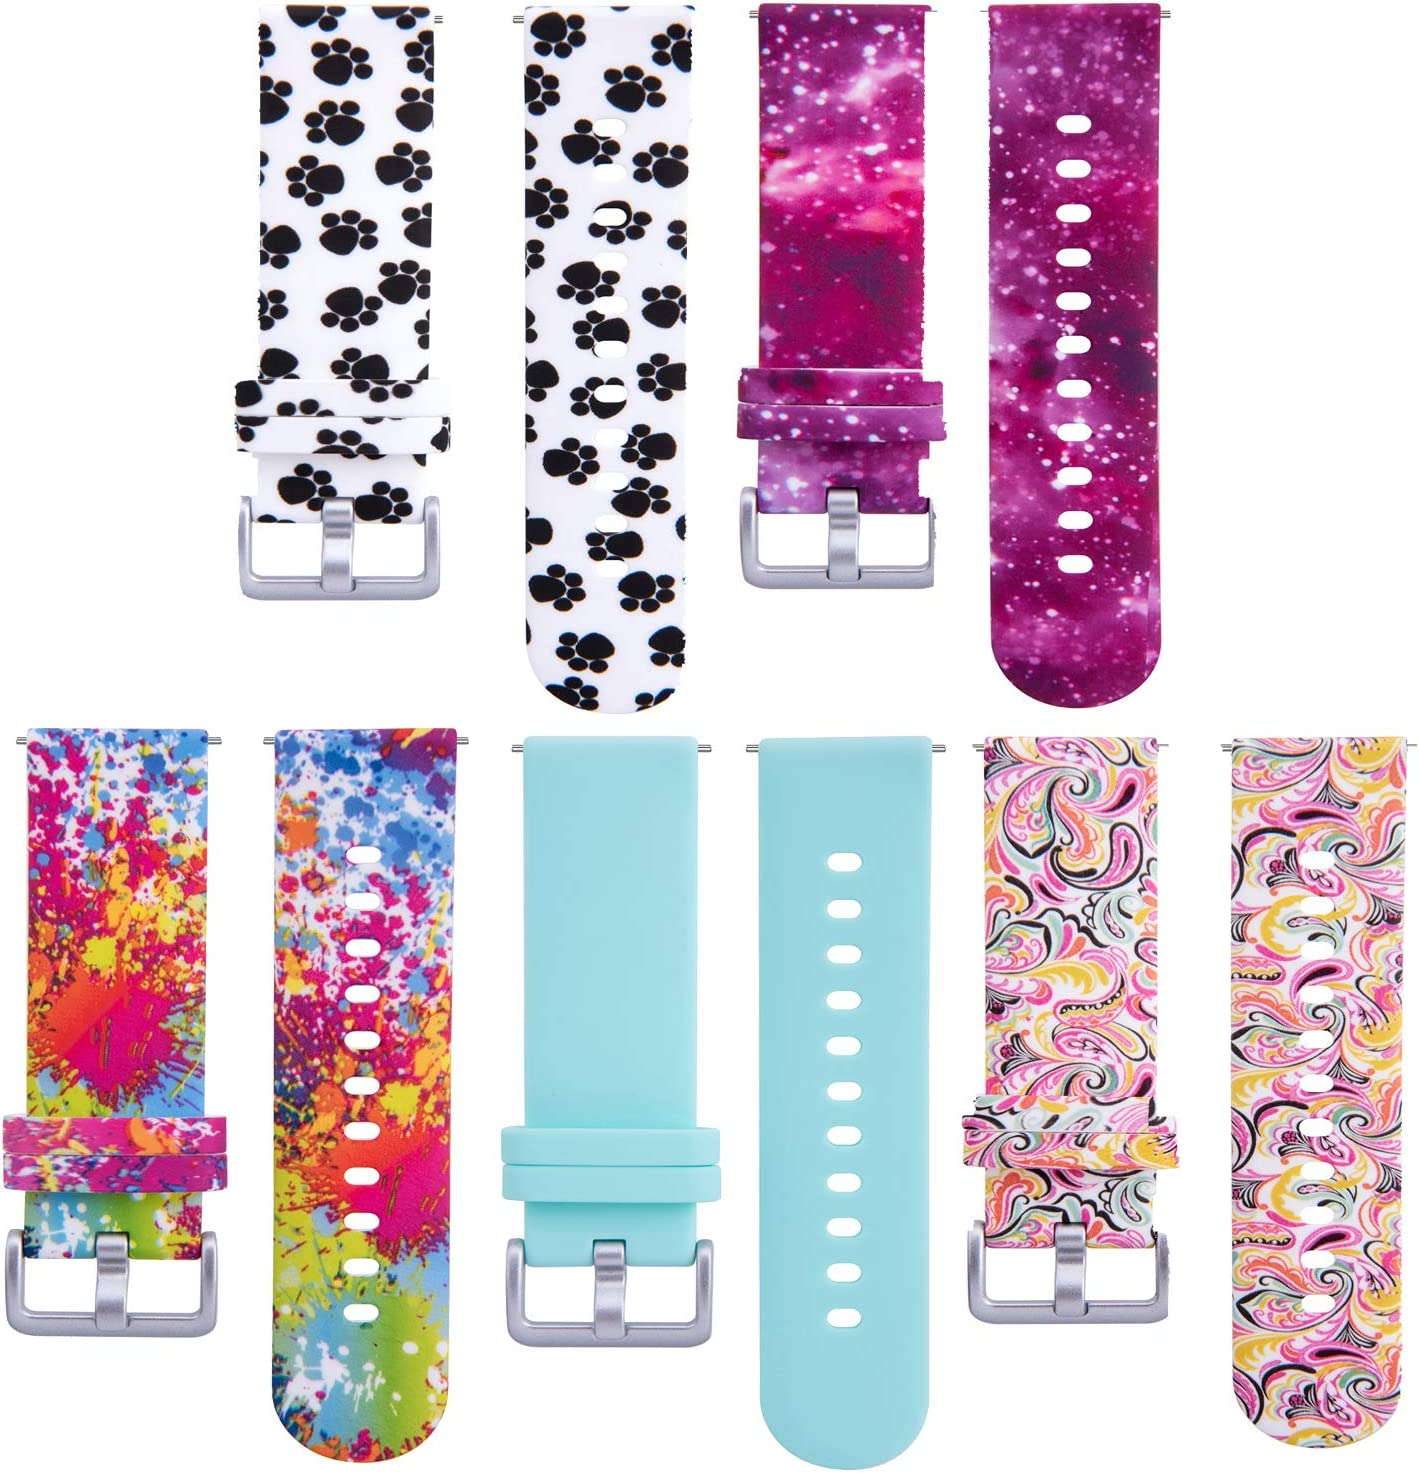 Chofit 5 Pack Bands Compatible with Verizon Gizmo Watch Bands for Kids, 20MM Band Replacement Quick Release Colorful Pattern Wristband Straps for Verizon Gizmo Watch 2 Smartwatch (Multicolor)